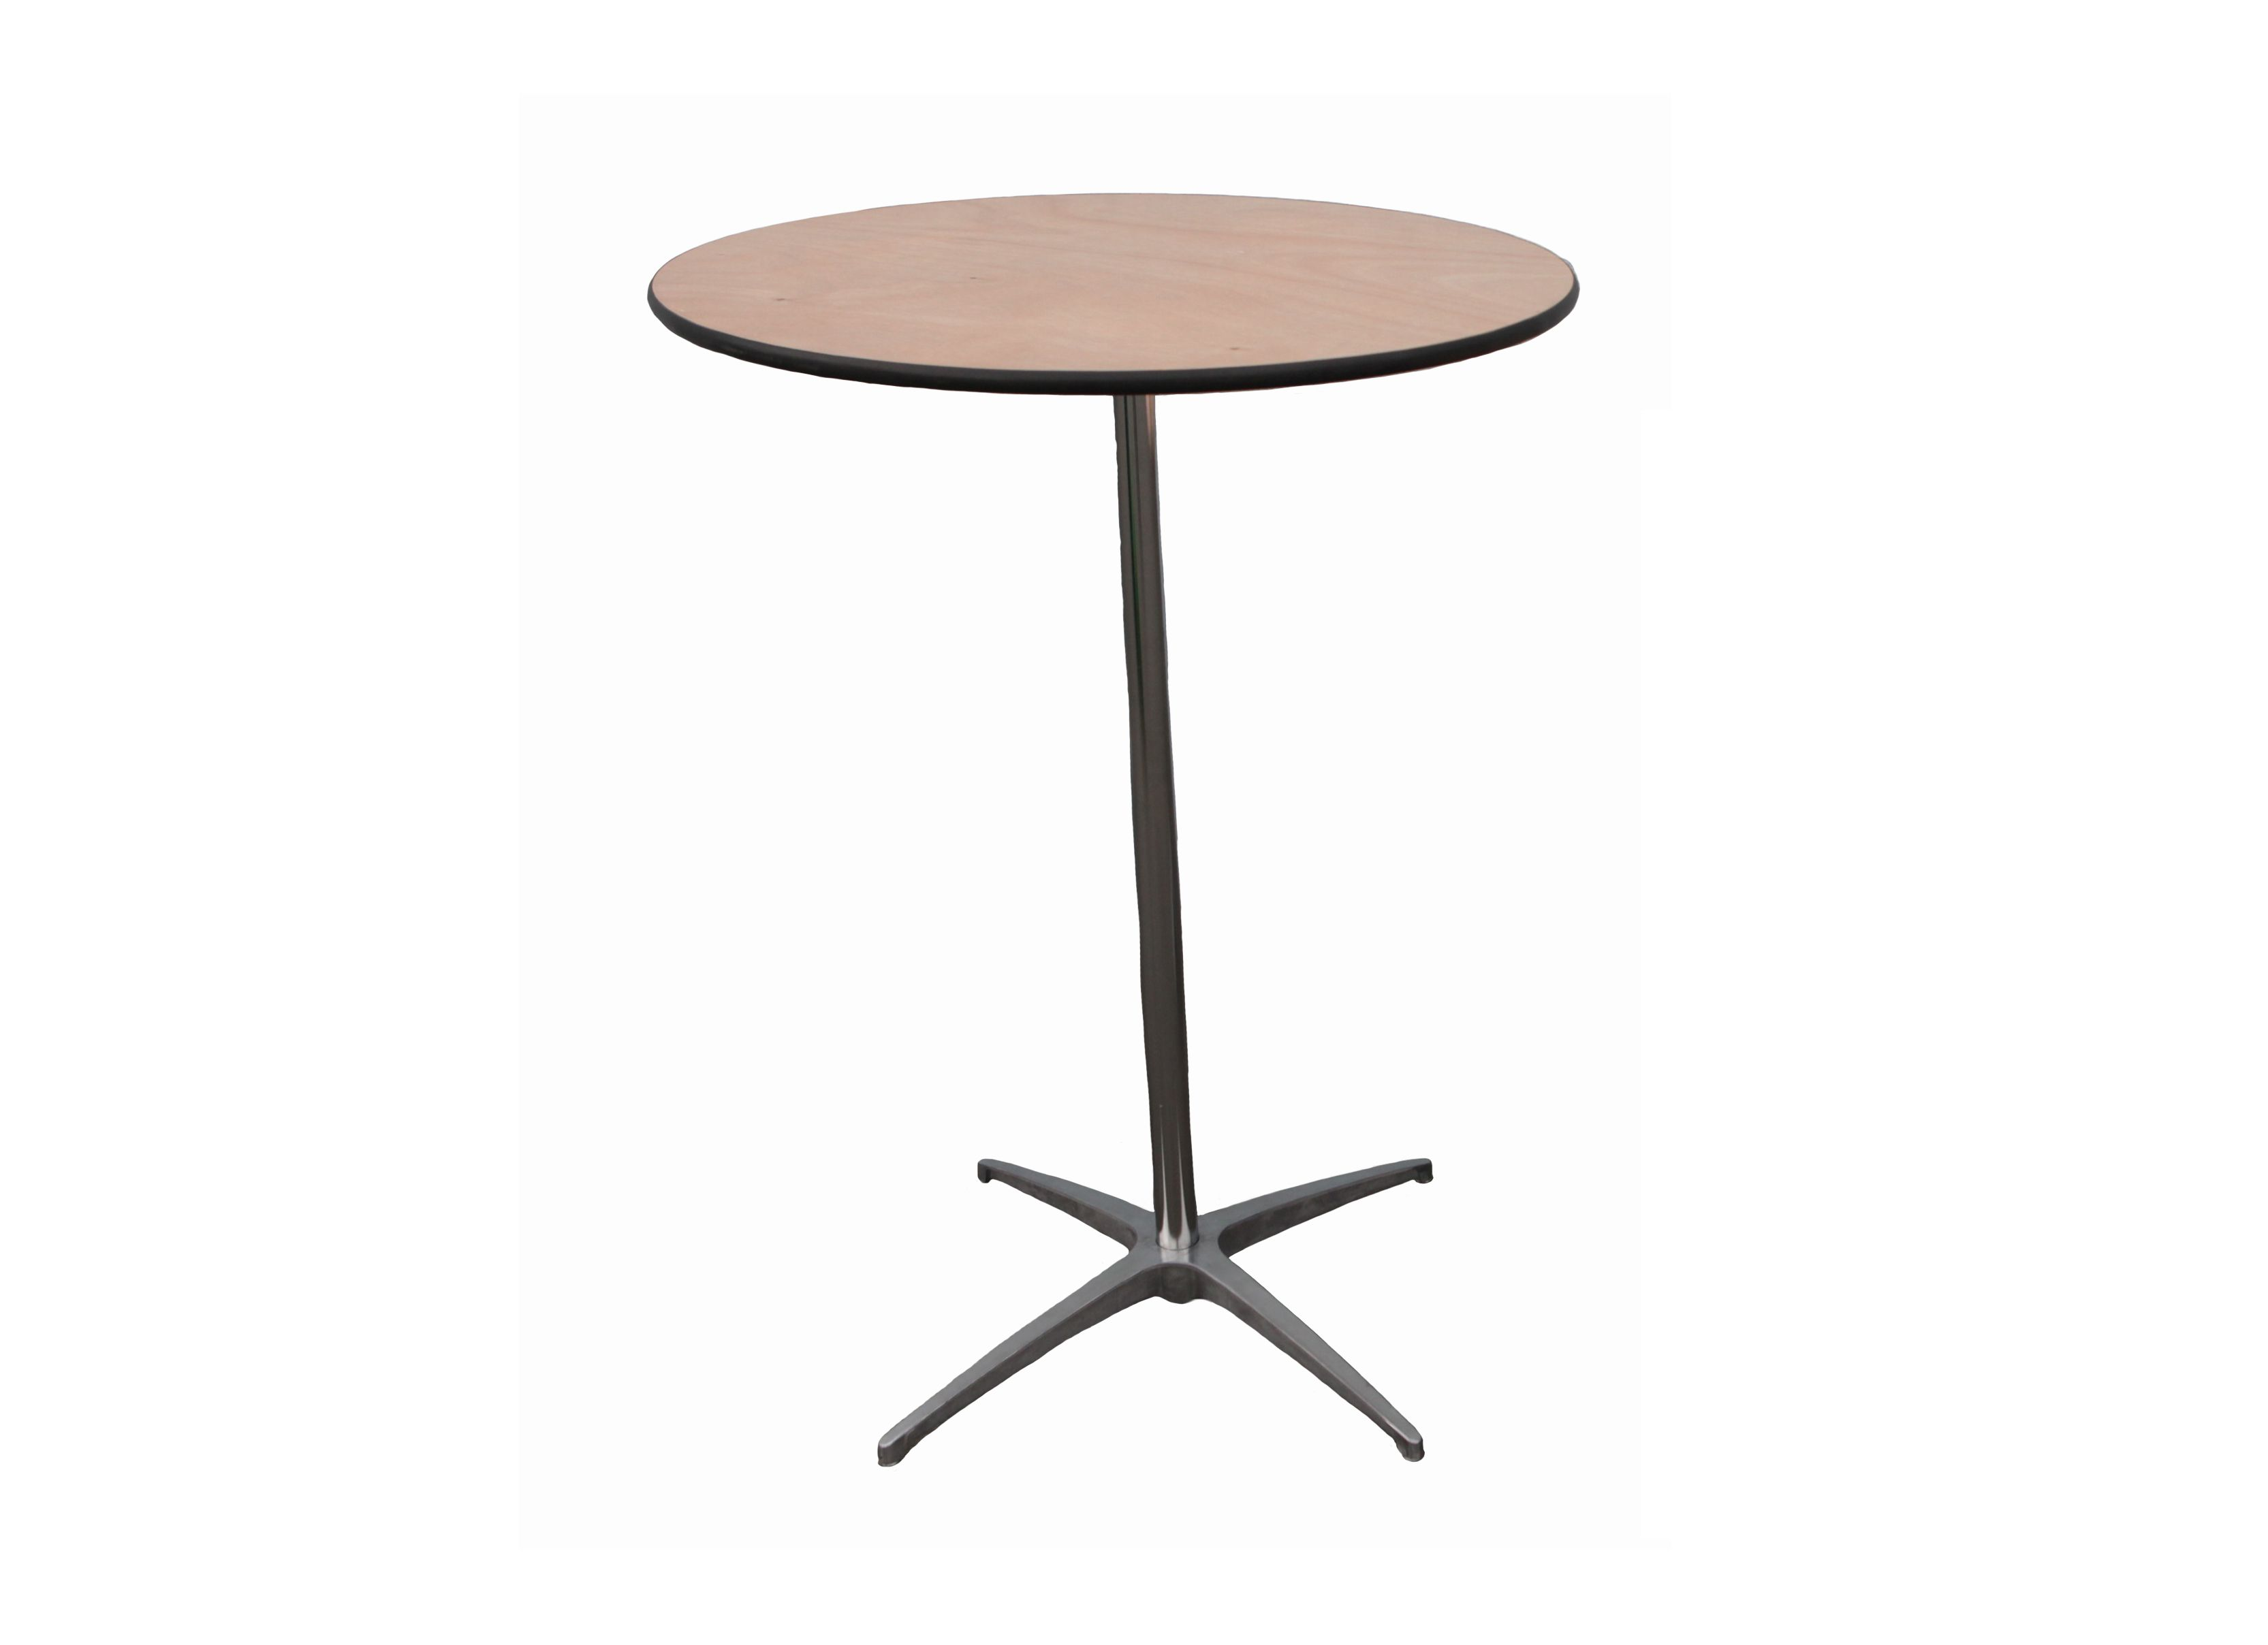 Cocktail Tables Are A Great Addition For Events Where People Will Be  Standing With Drinks In